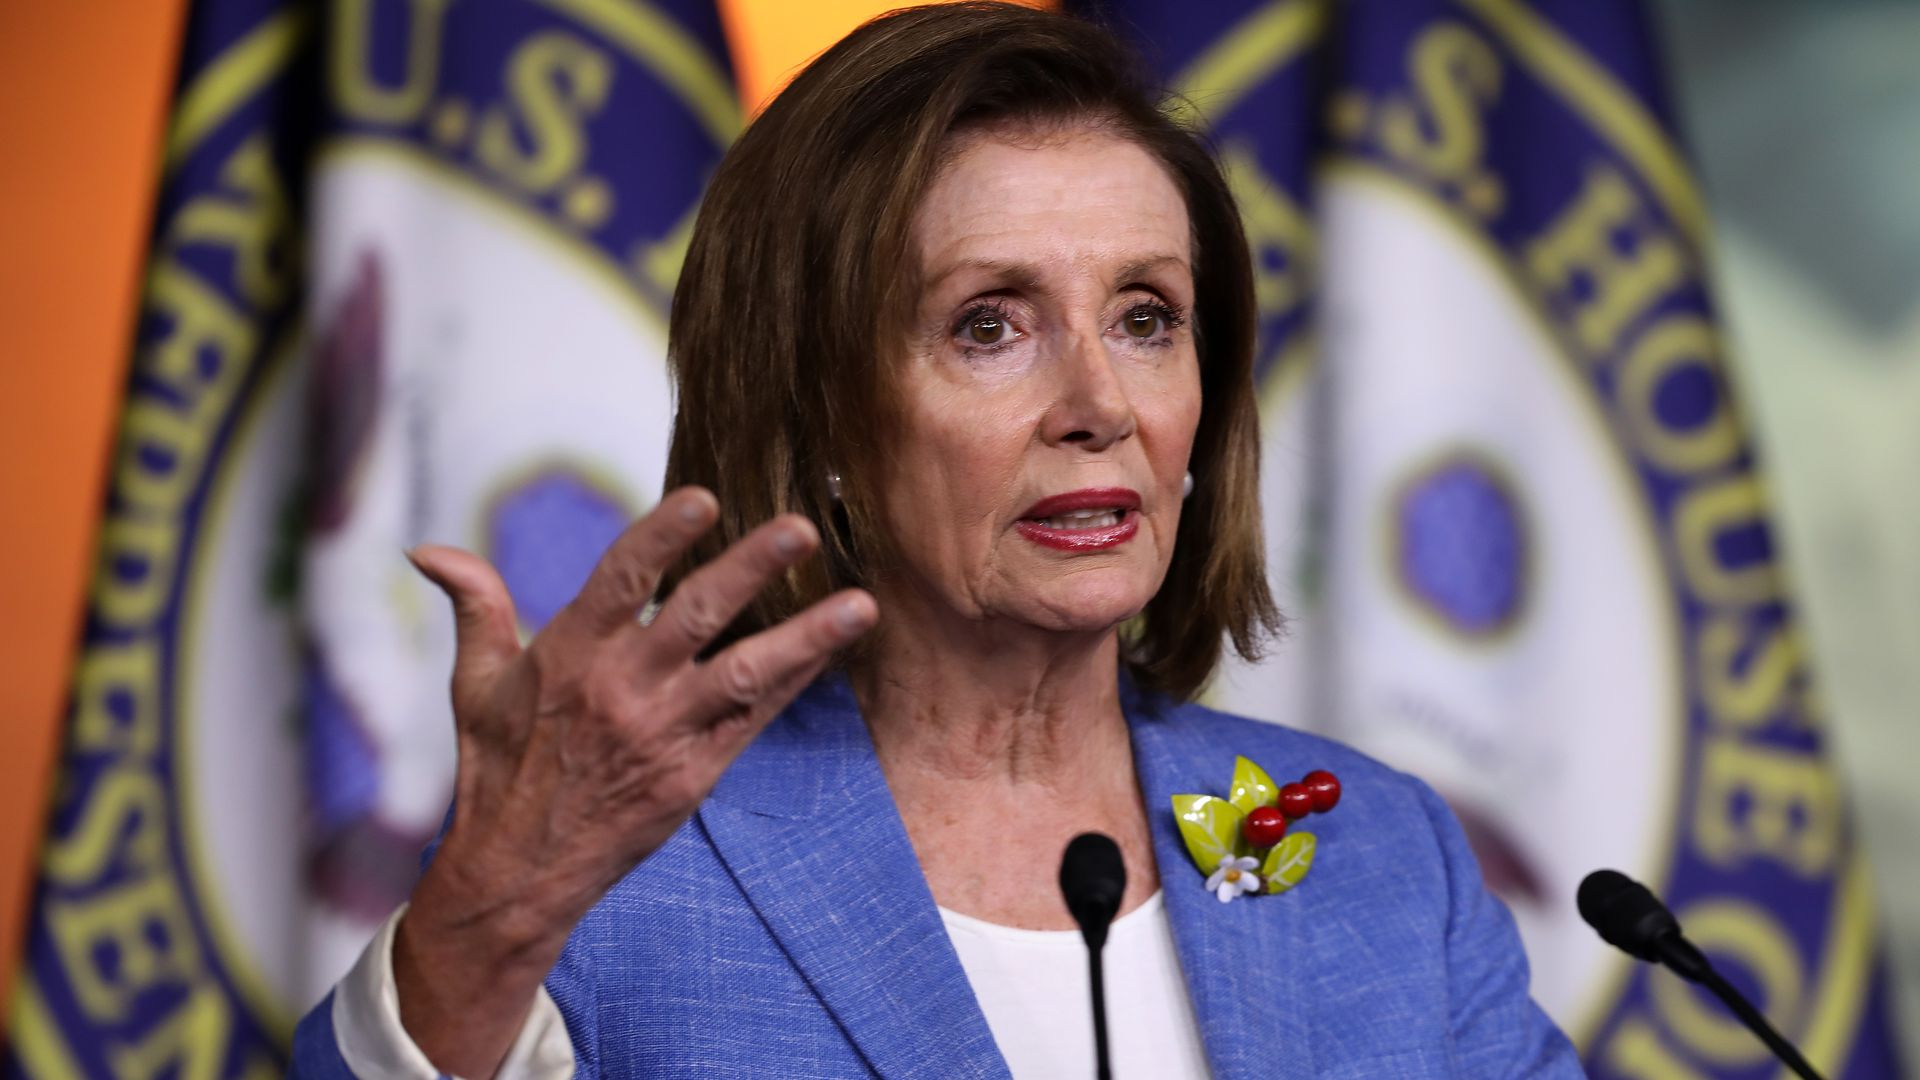 Nancy Pelosi gesturing with her hand.